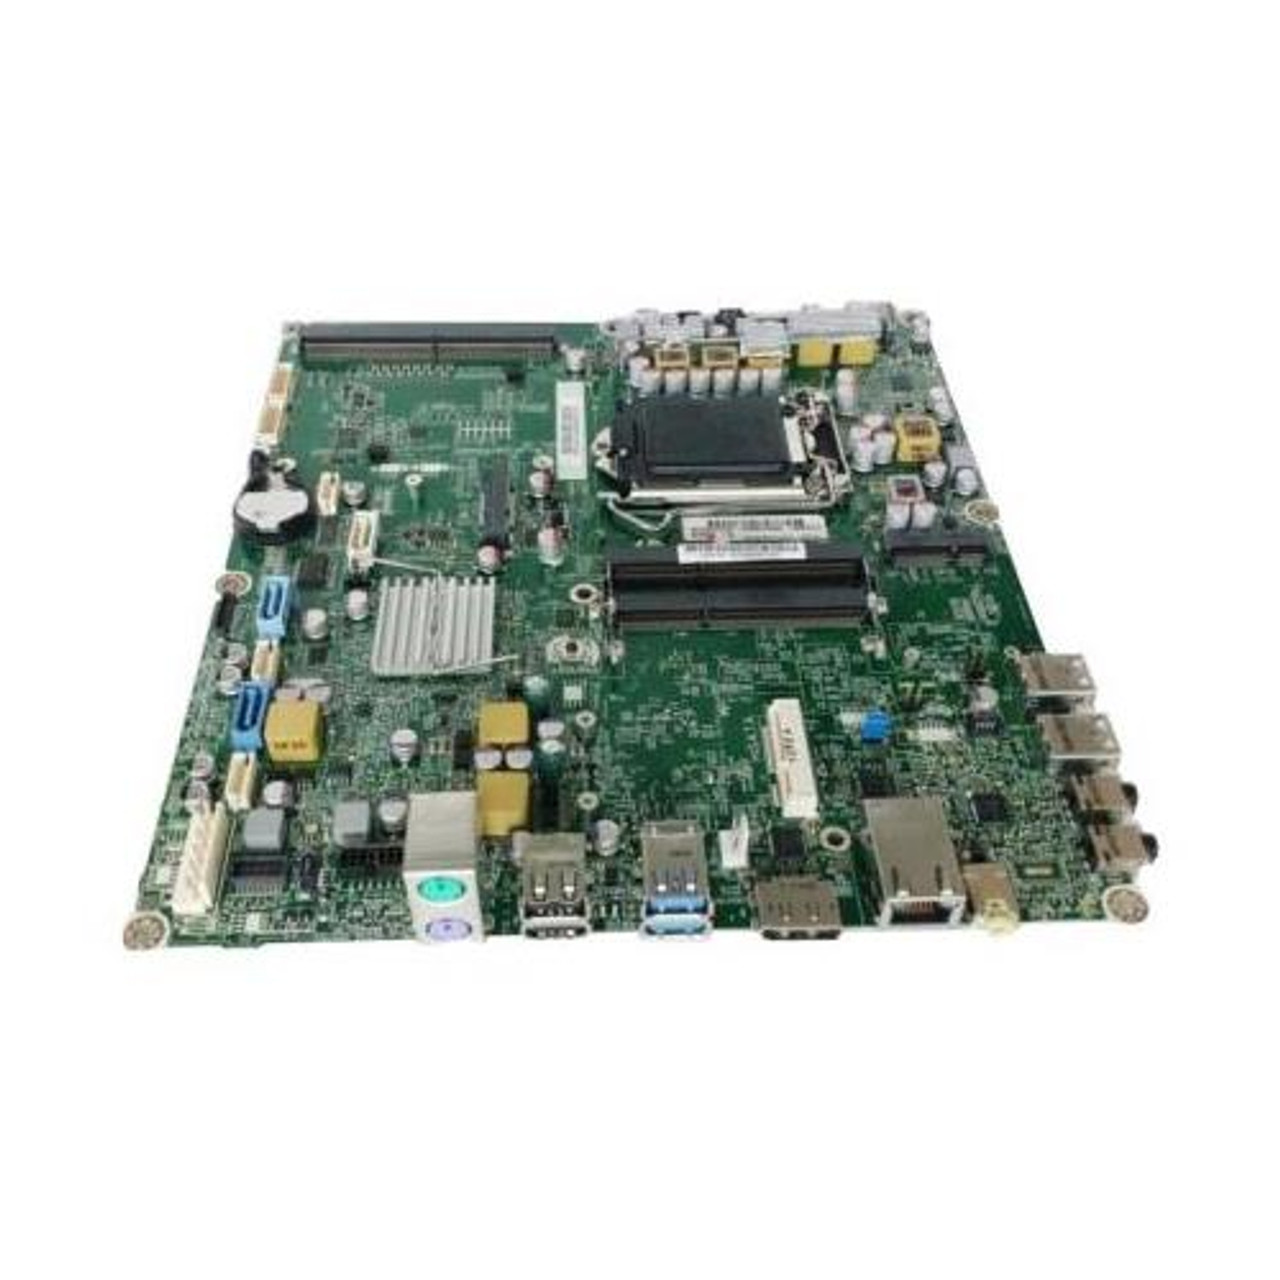 657238-001 HP System Board (Motherboard) for Compaq Pro 6300 Series  All-in-One Desktop PC (Refurbished)